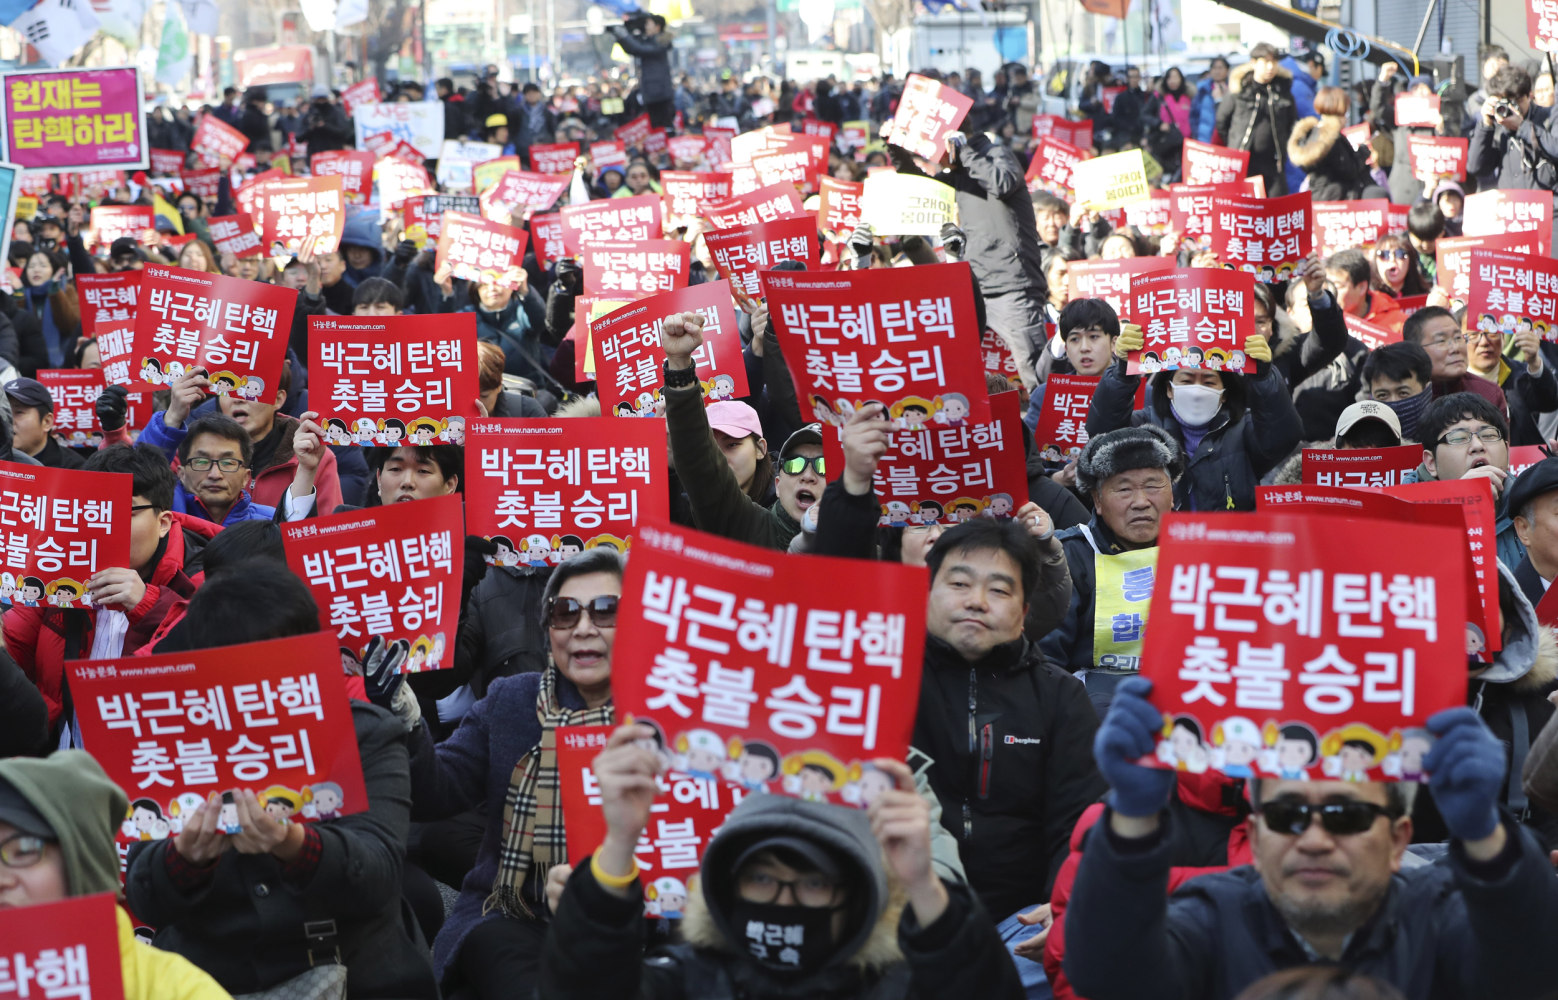 South Korean court upholds President Park's impeachment, removing her from office